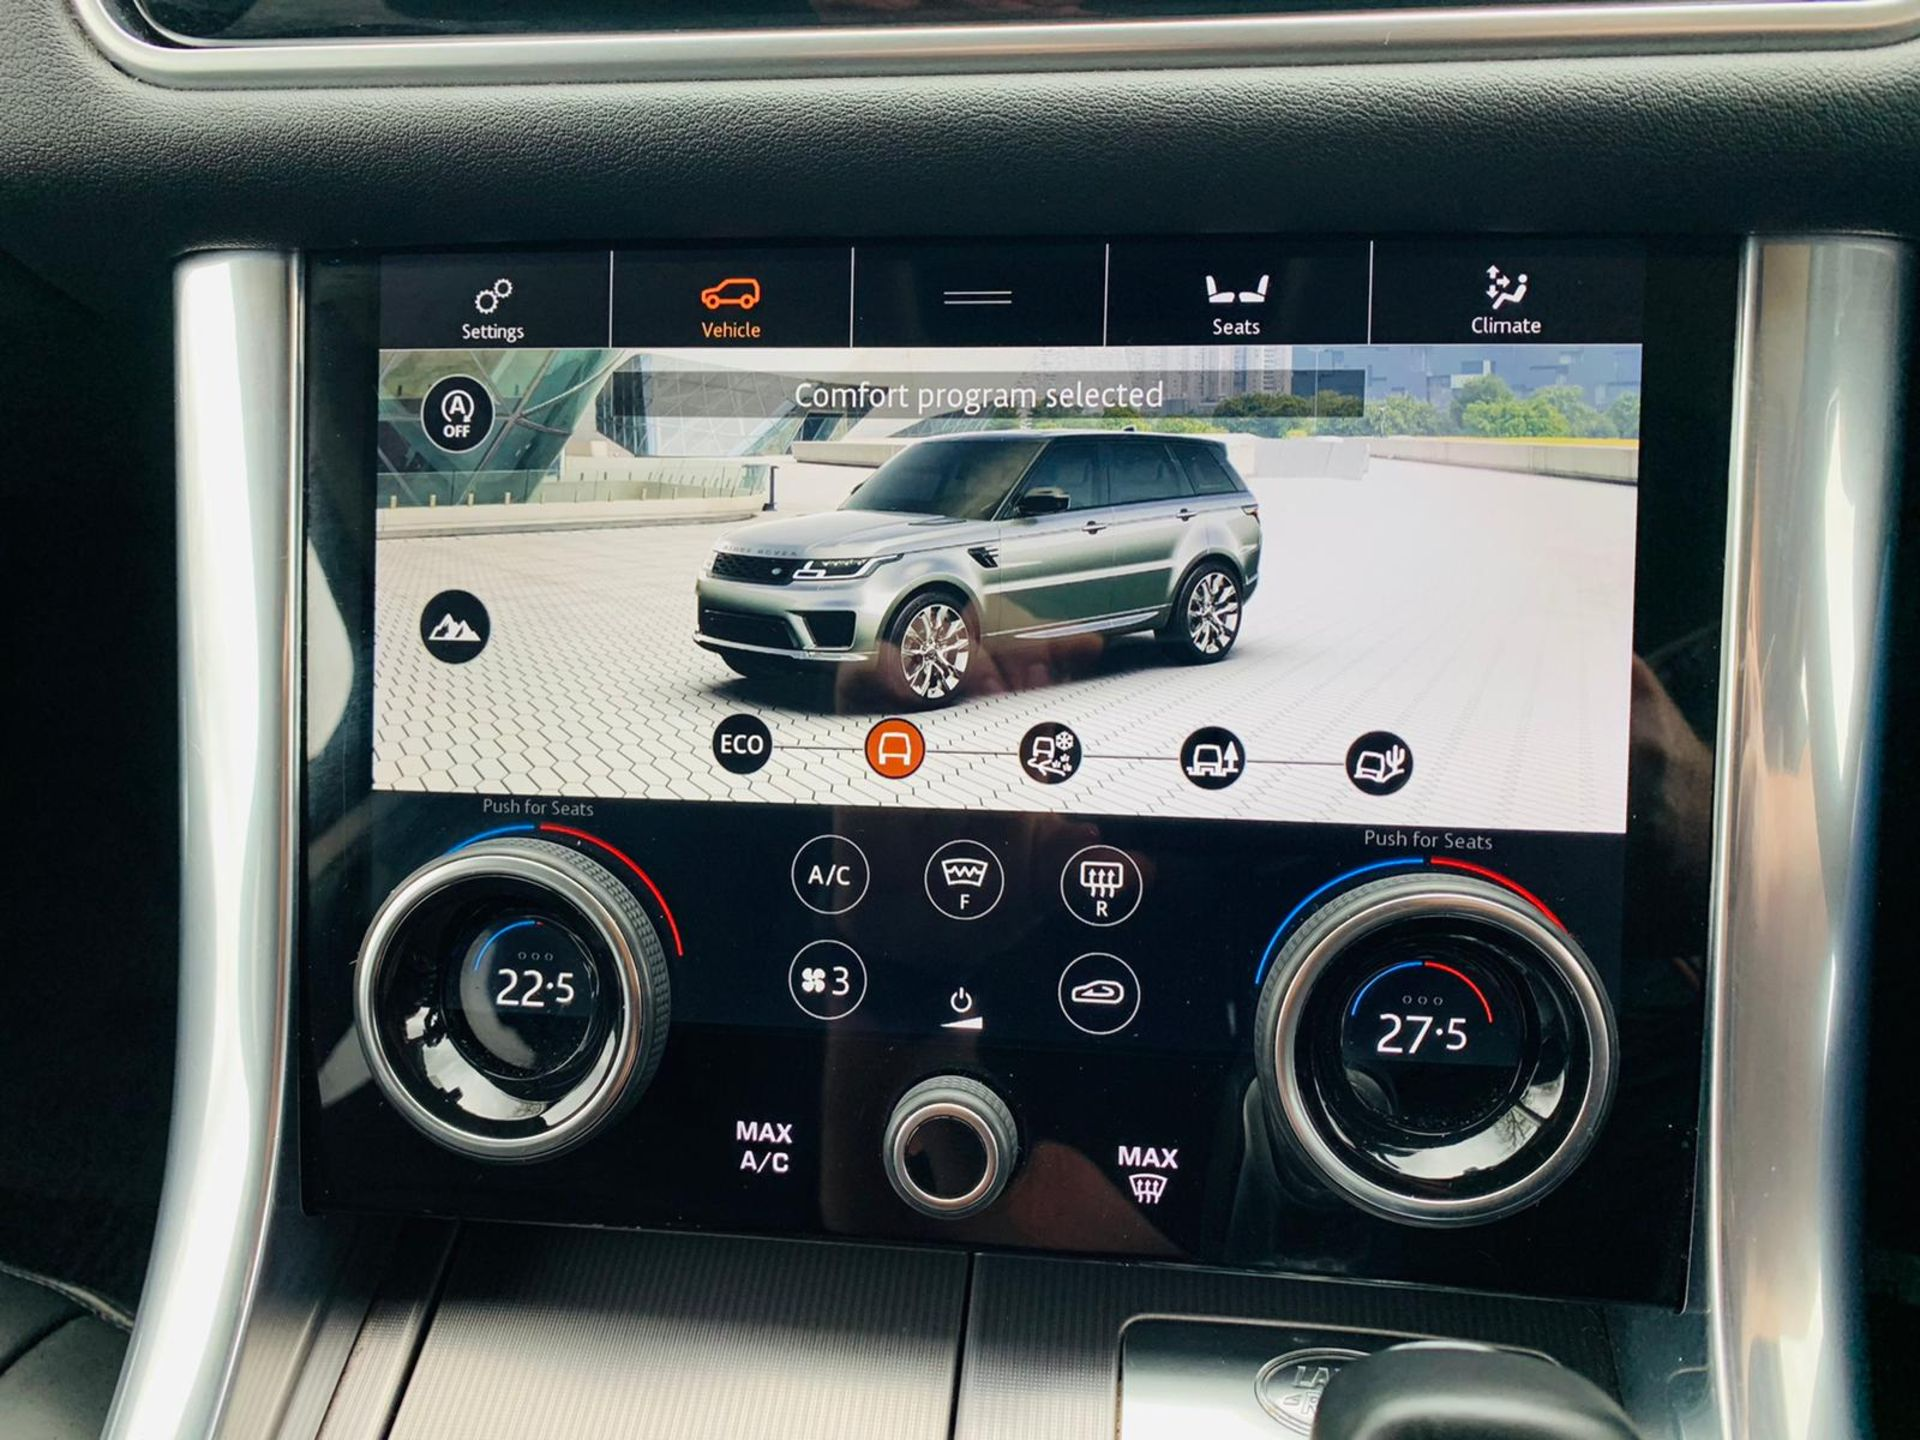 (RESERVE MET) Range Rover Sport 3.0 SDV6 HSE Auto - 2019 - 1 Keeper From New - Virtual Cockpit - - Image 18 of 42